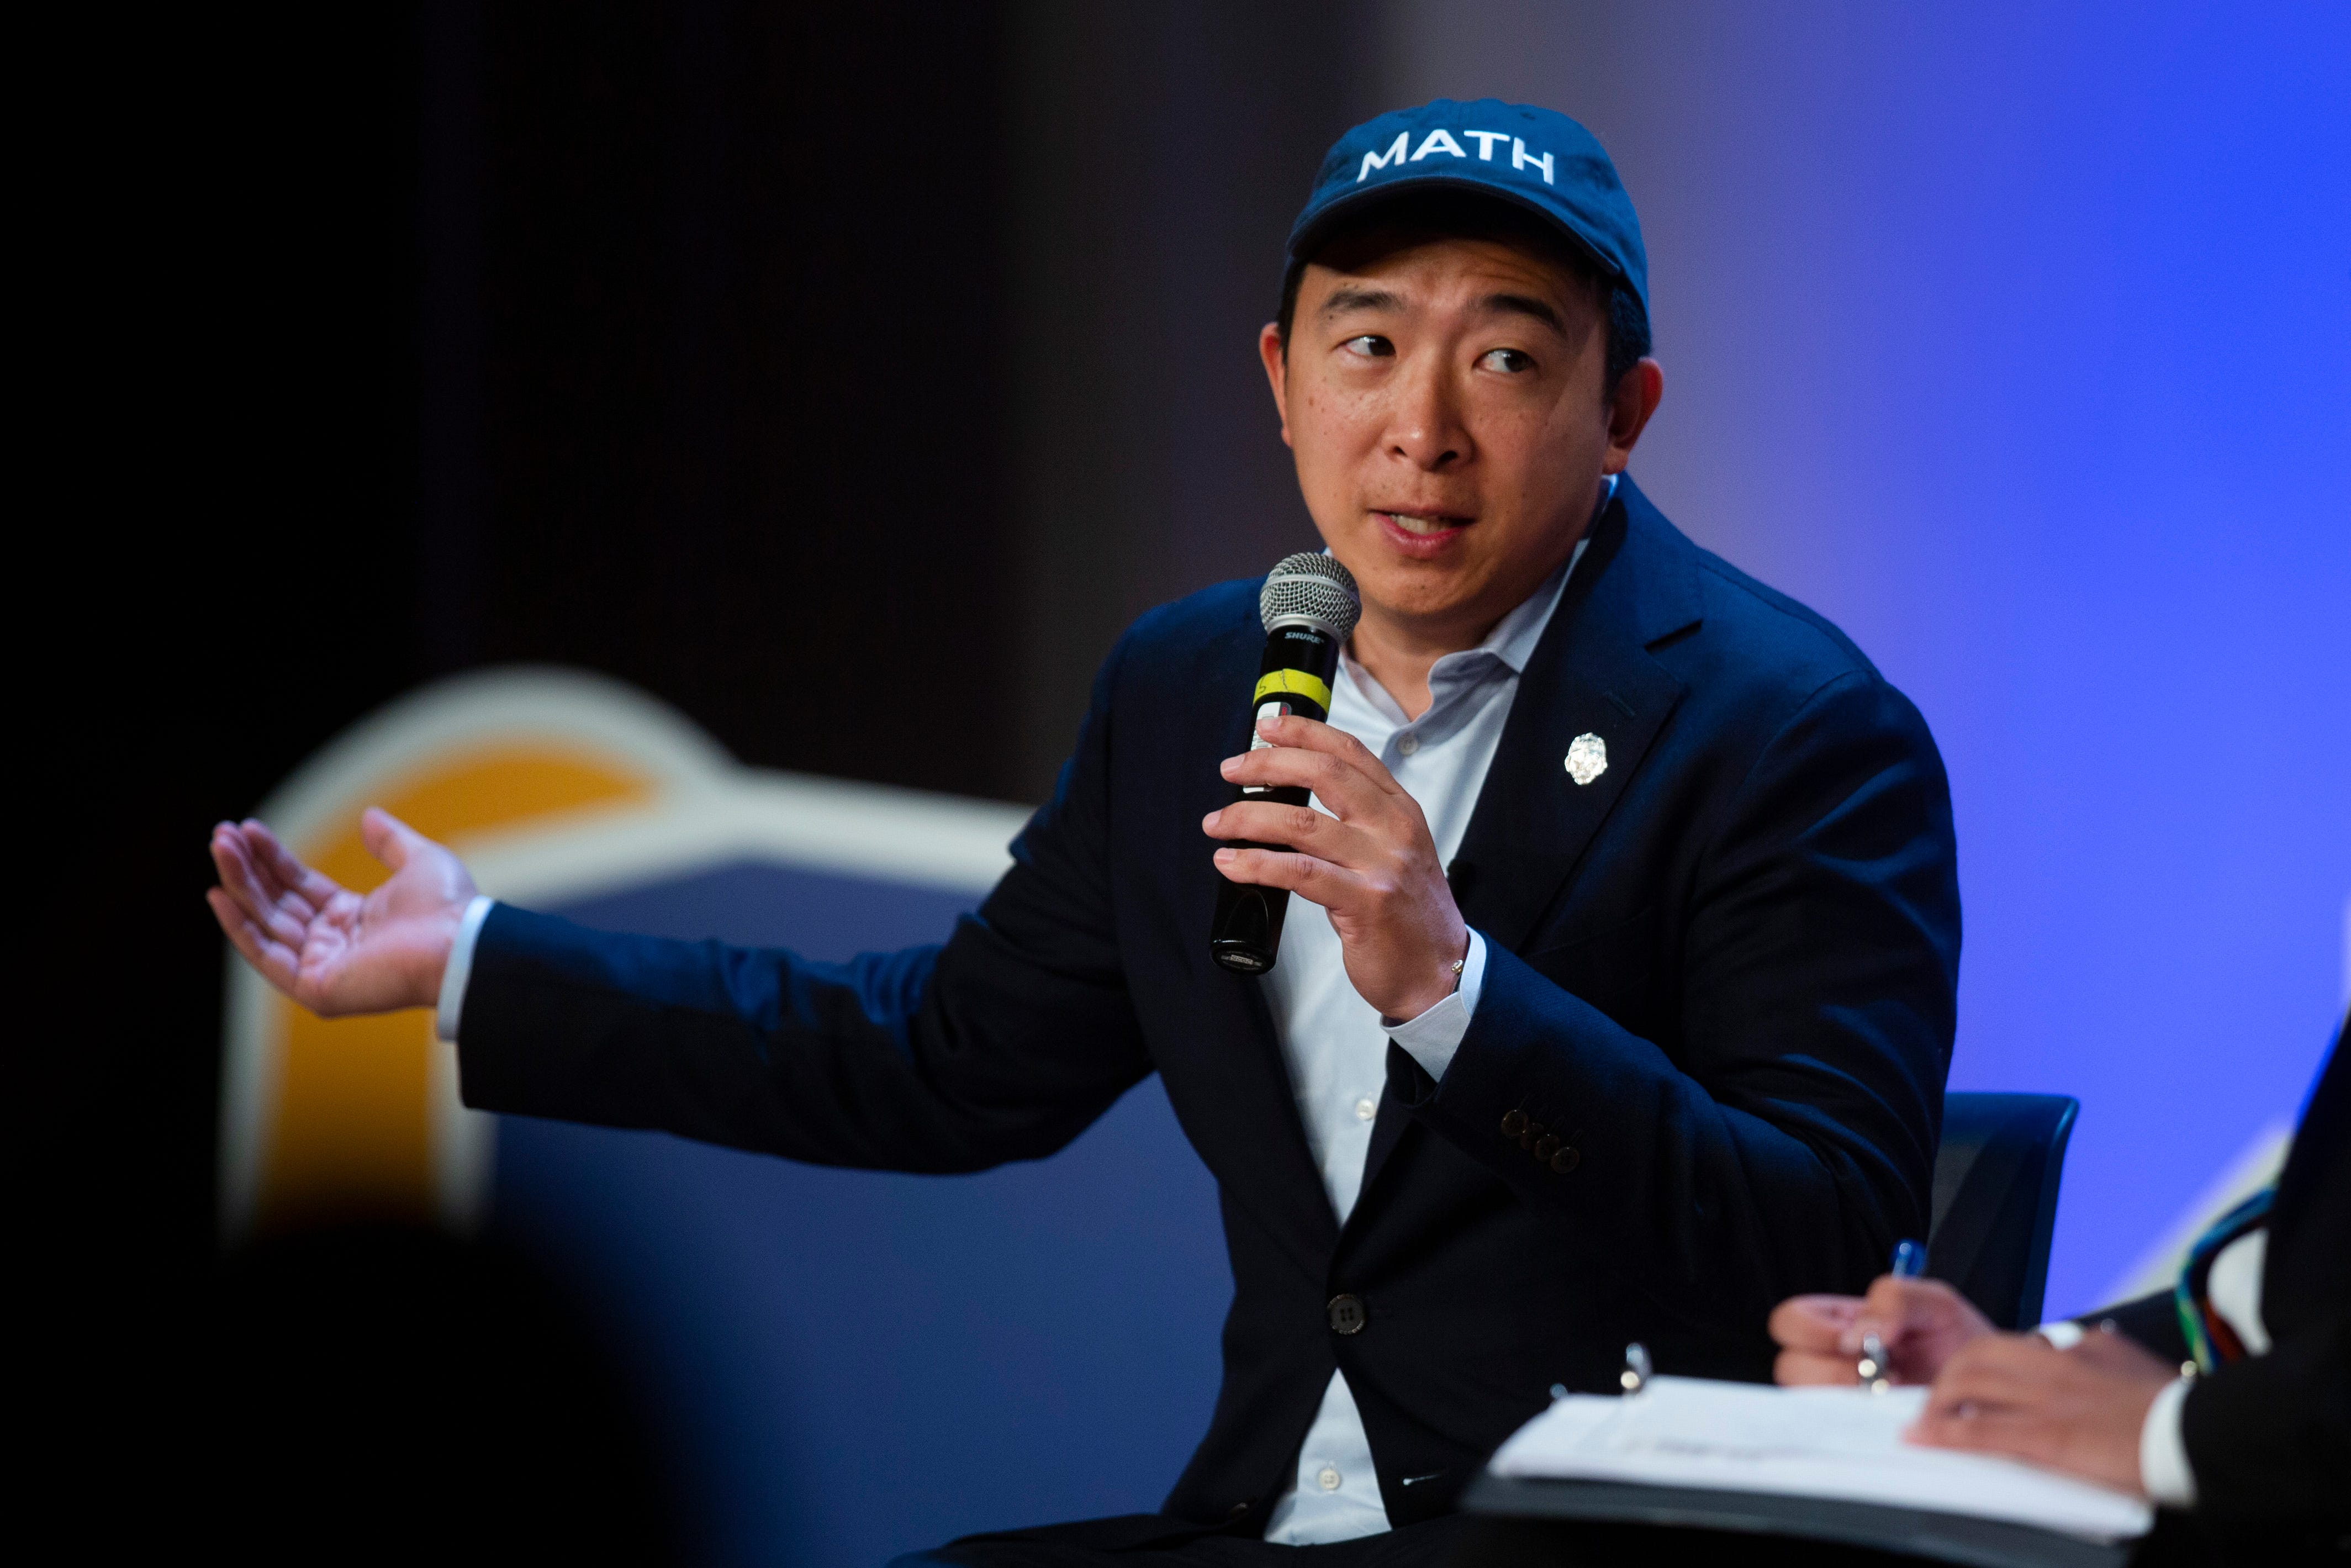 Why keep Iowa's caucuses? Andrew Yang does the math on the influence of our state